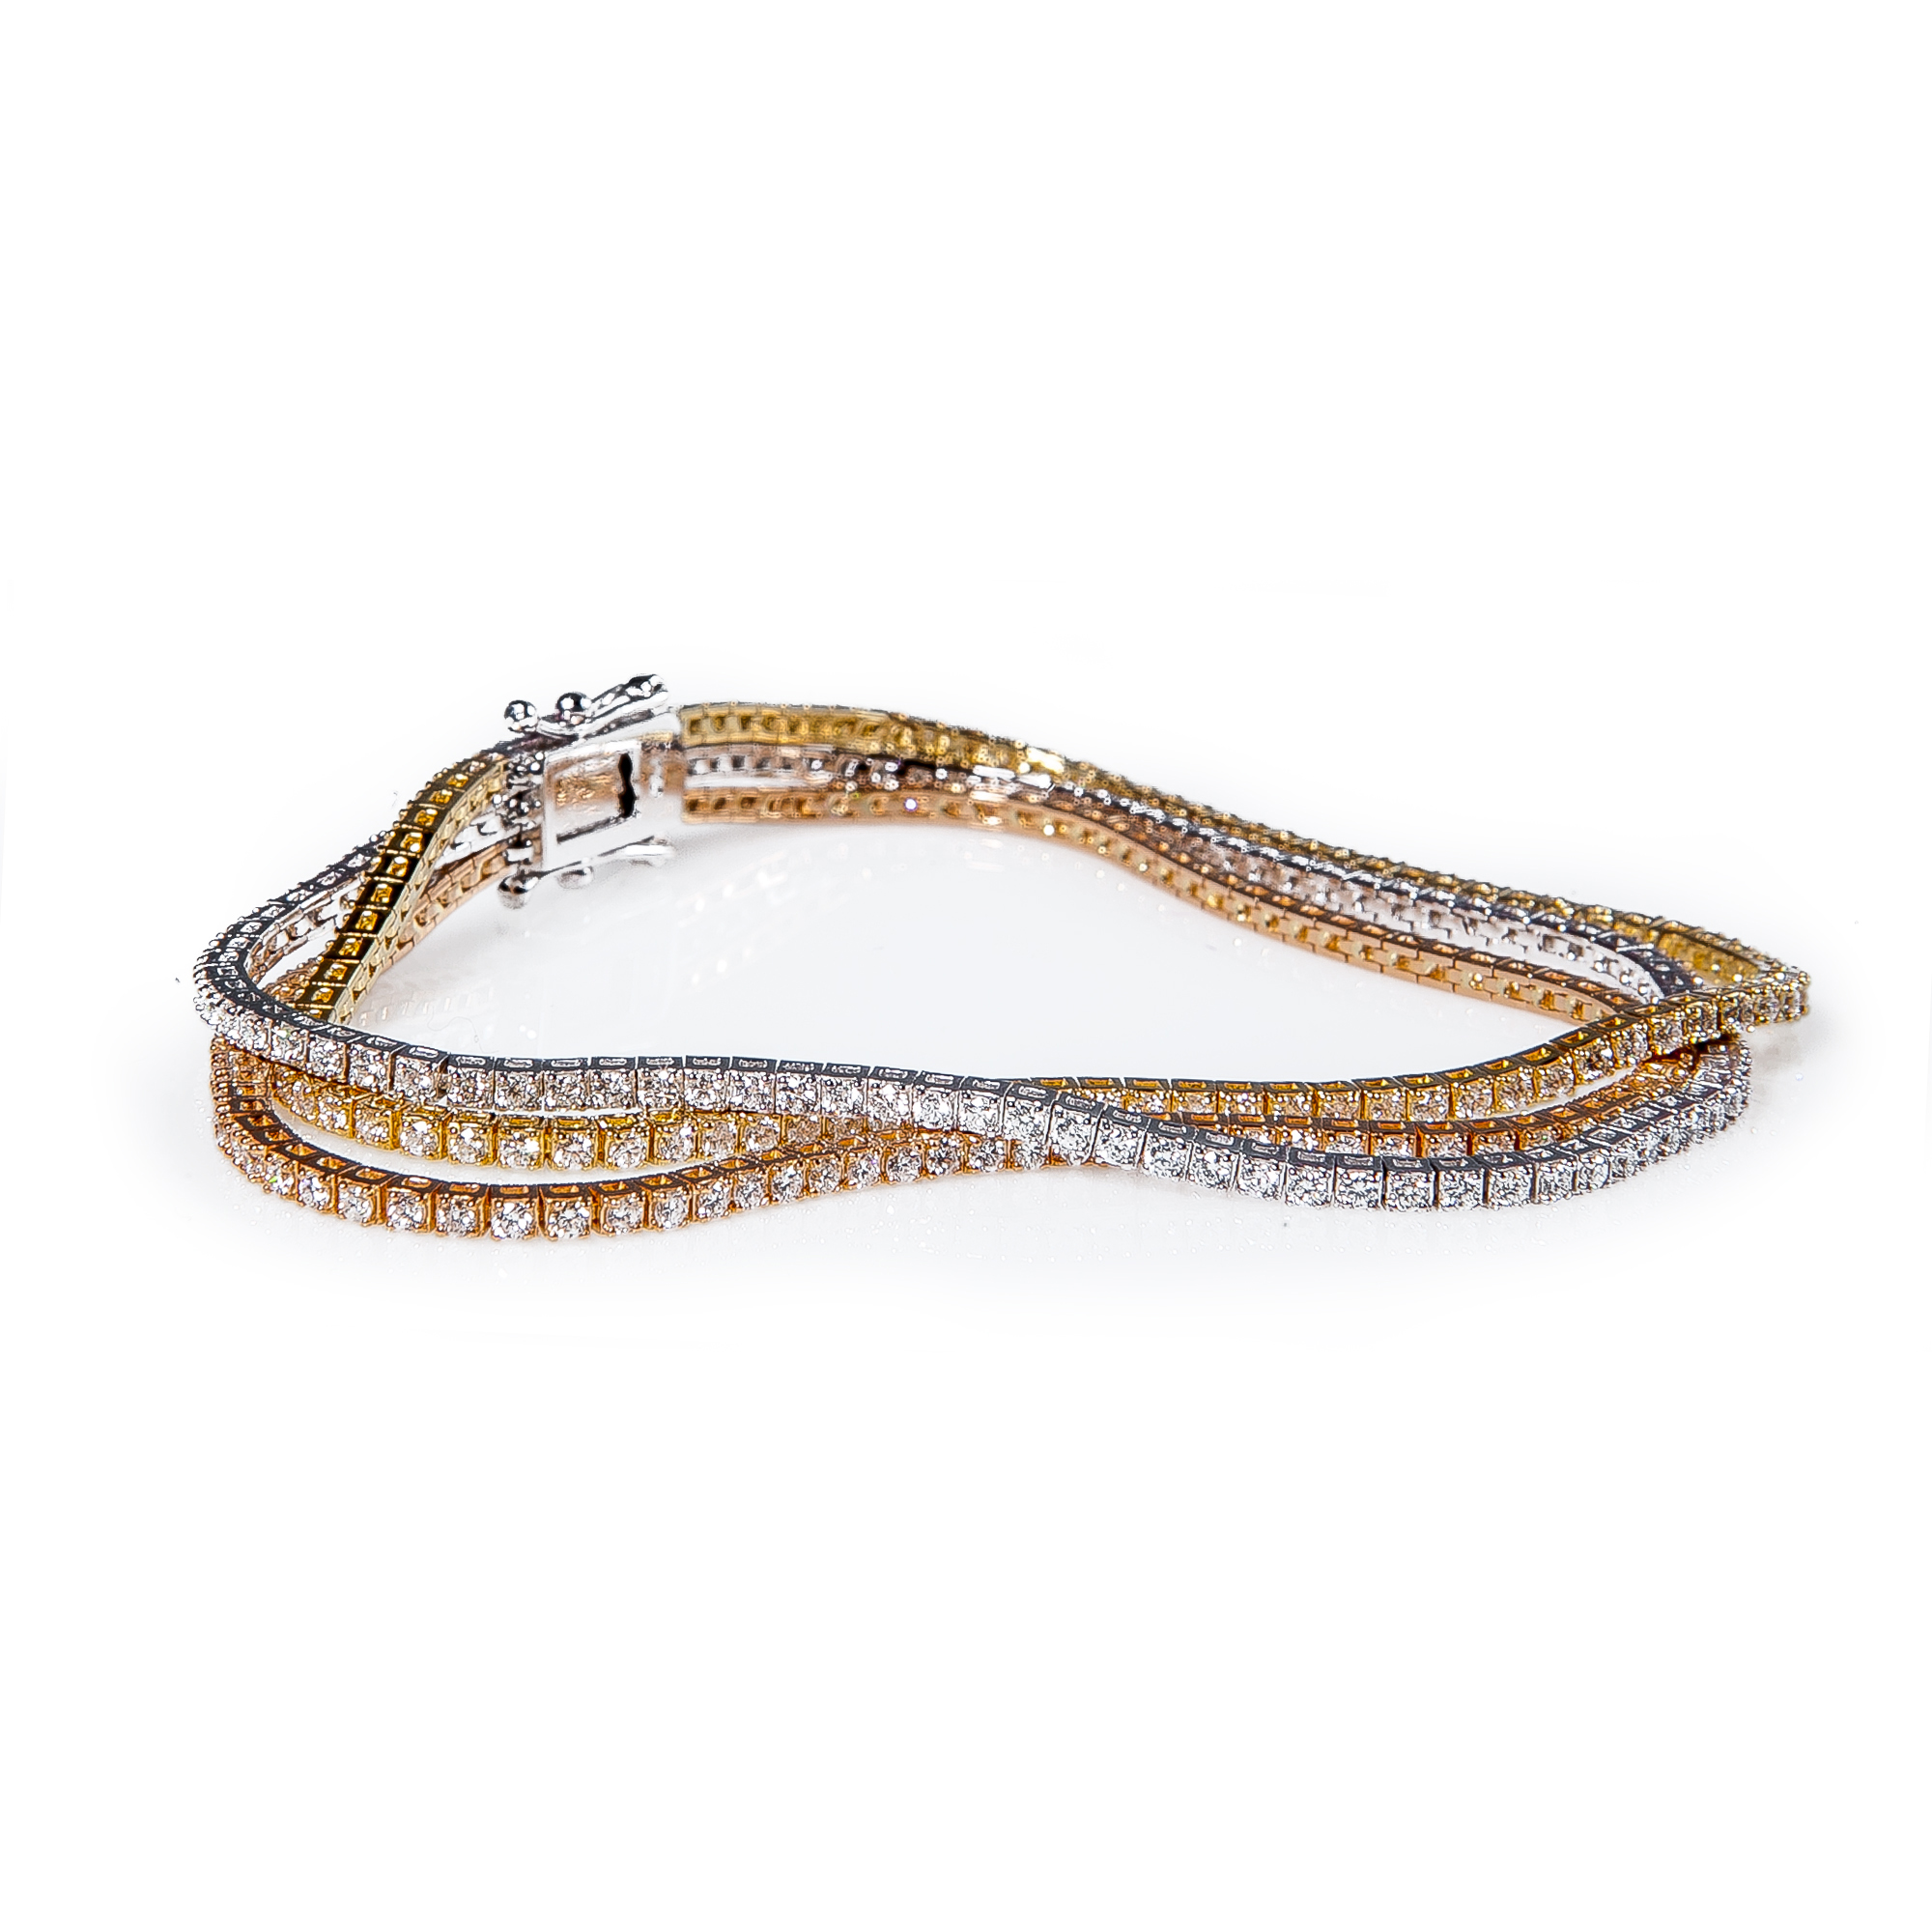 pave rgyg yg catalog tennis diamond bracelet bangle rg bangles